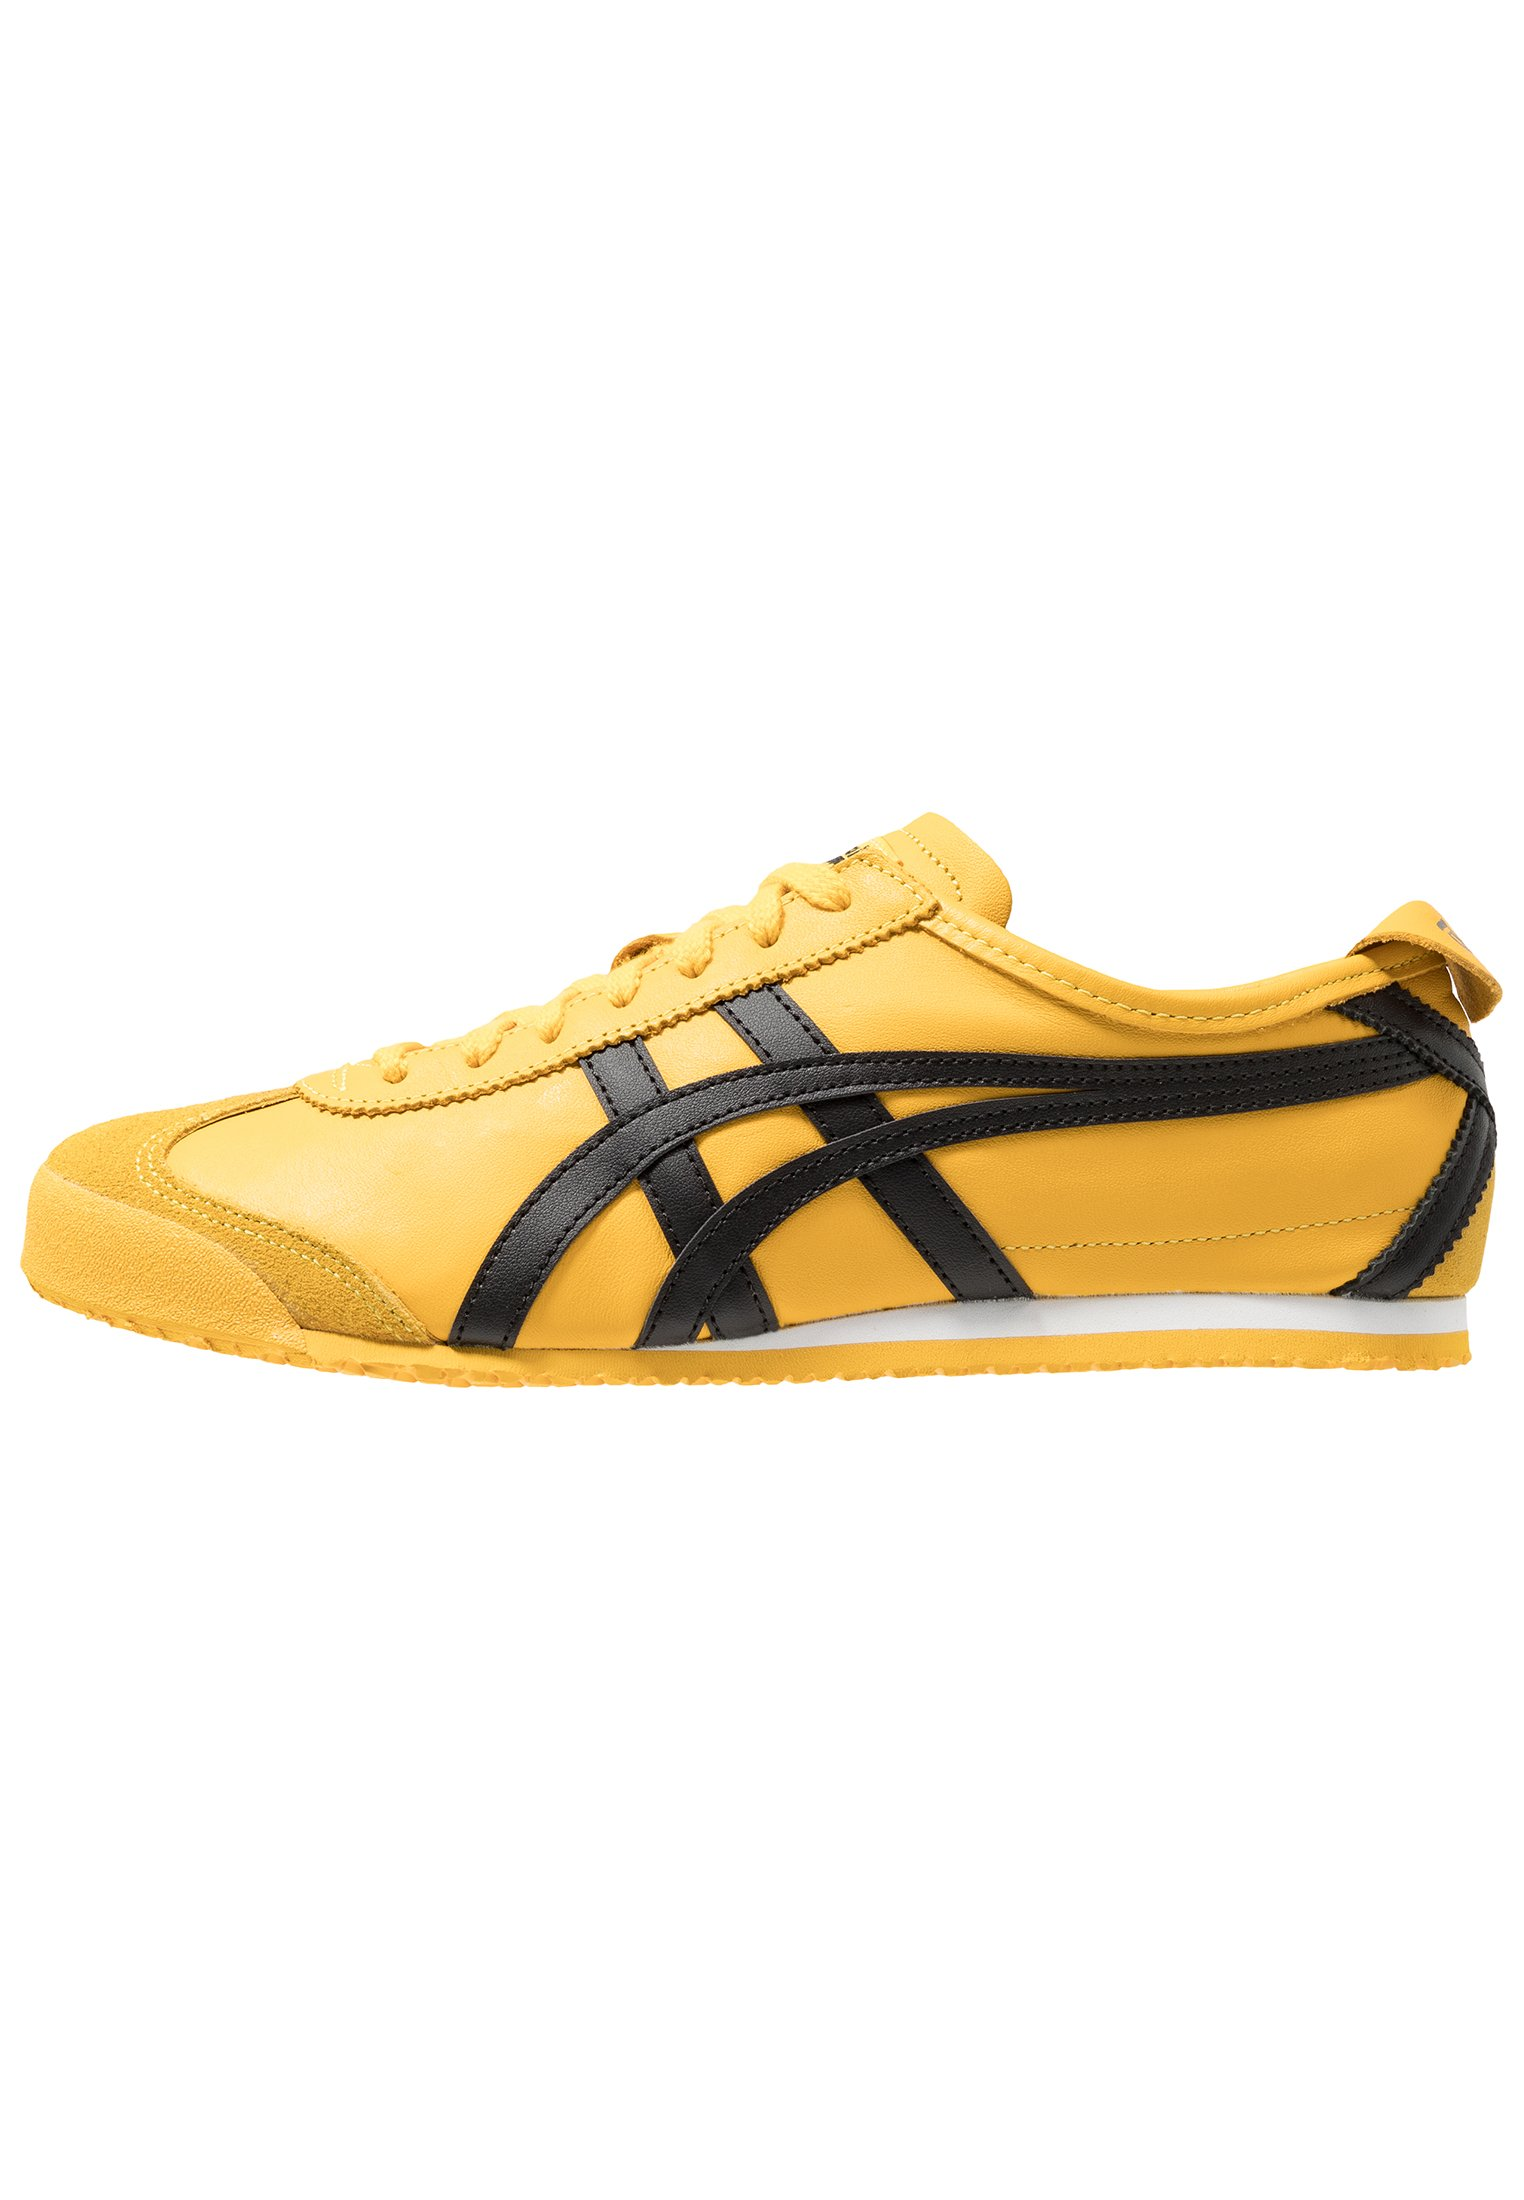 asics onitsuka tiger mexico 66 outlet 45